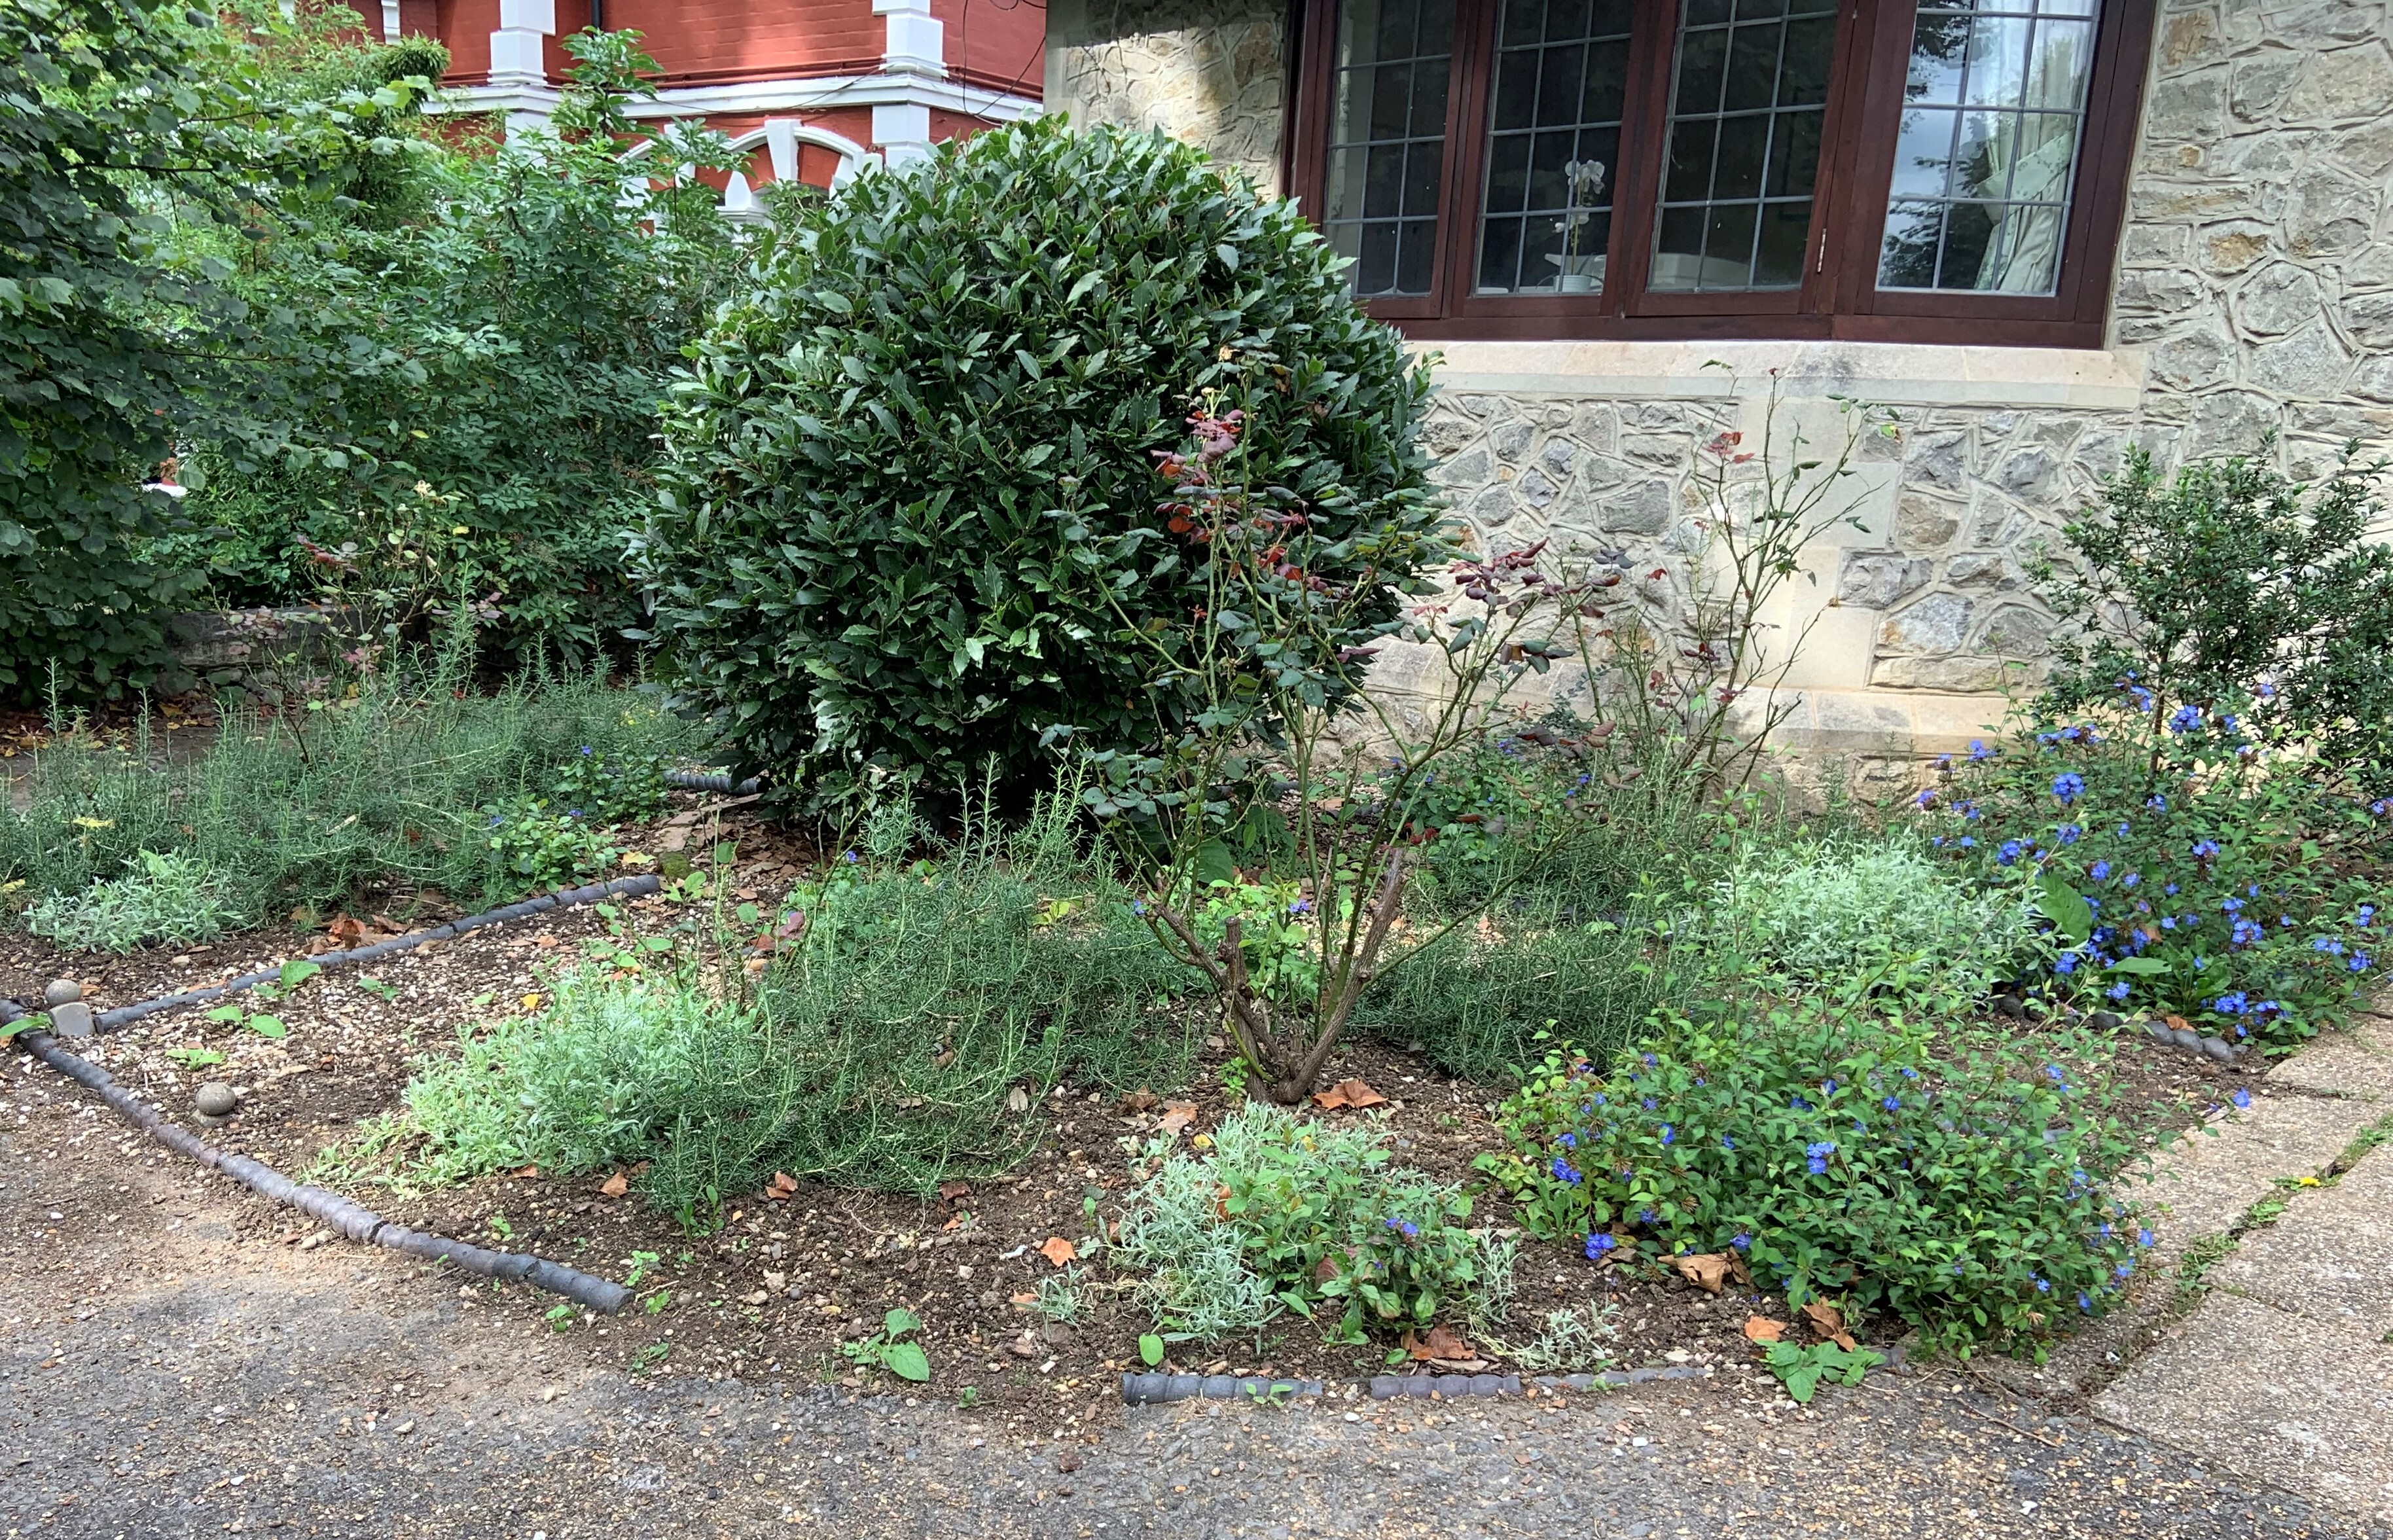 An image of the rosemary garden on the church grounds